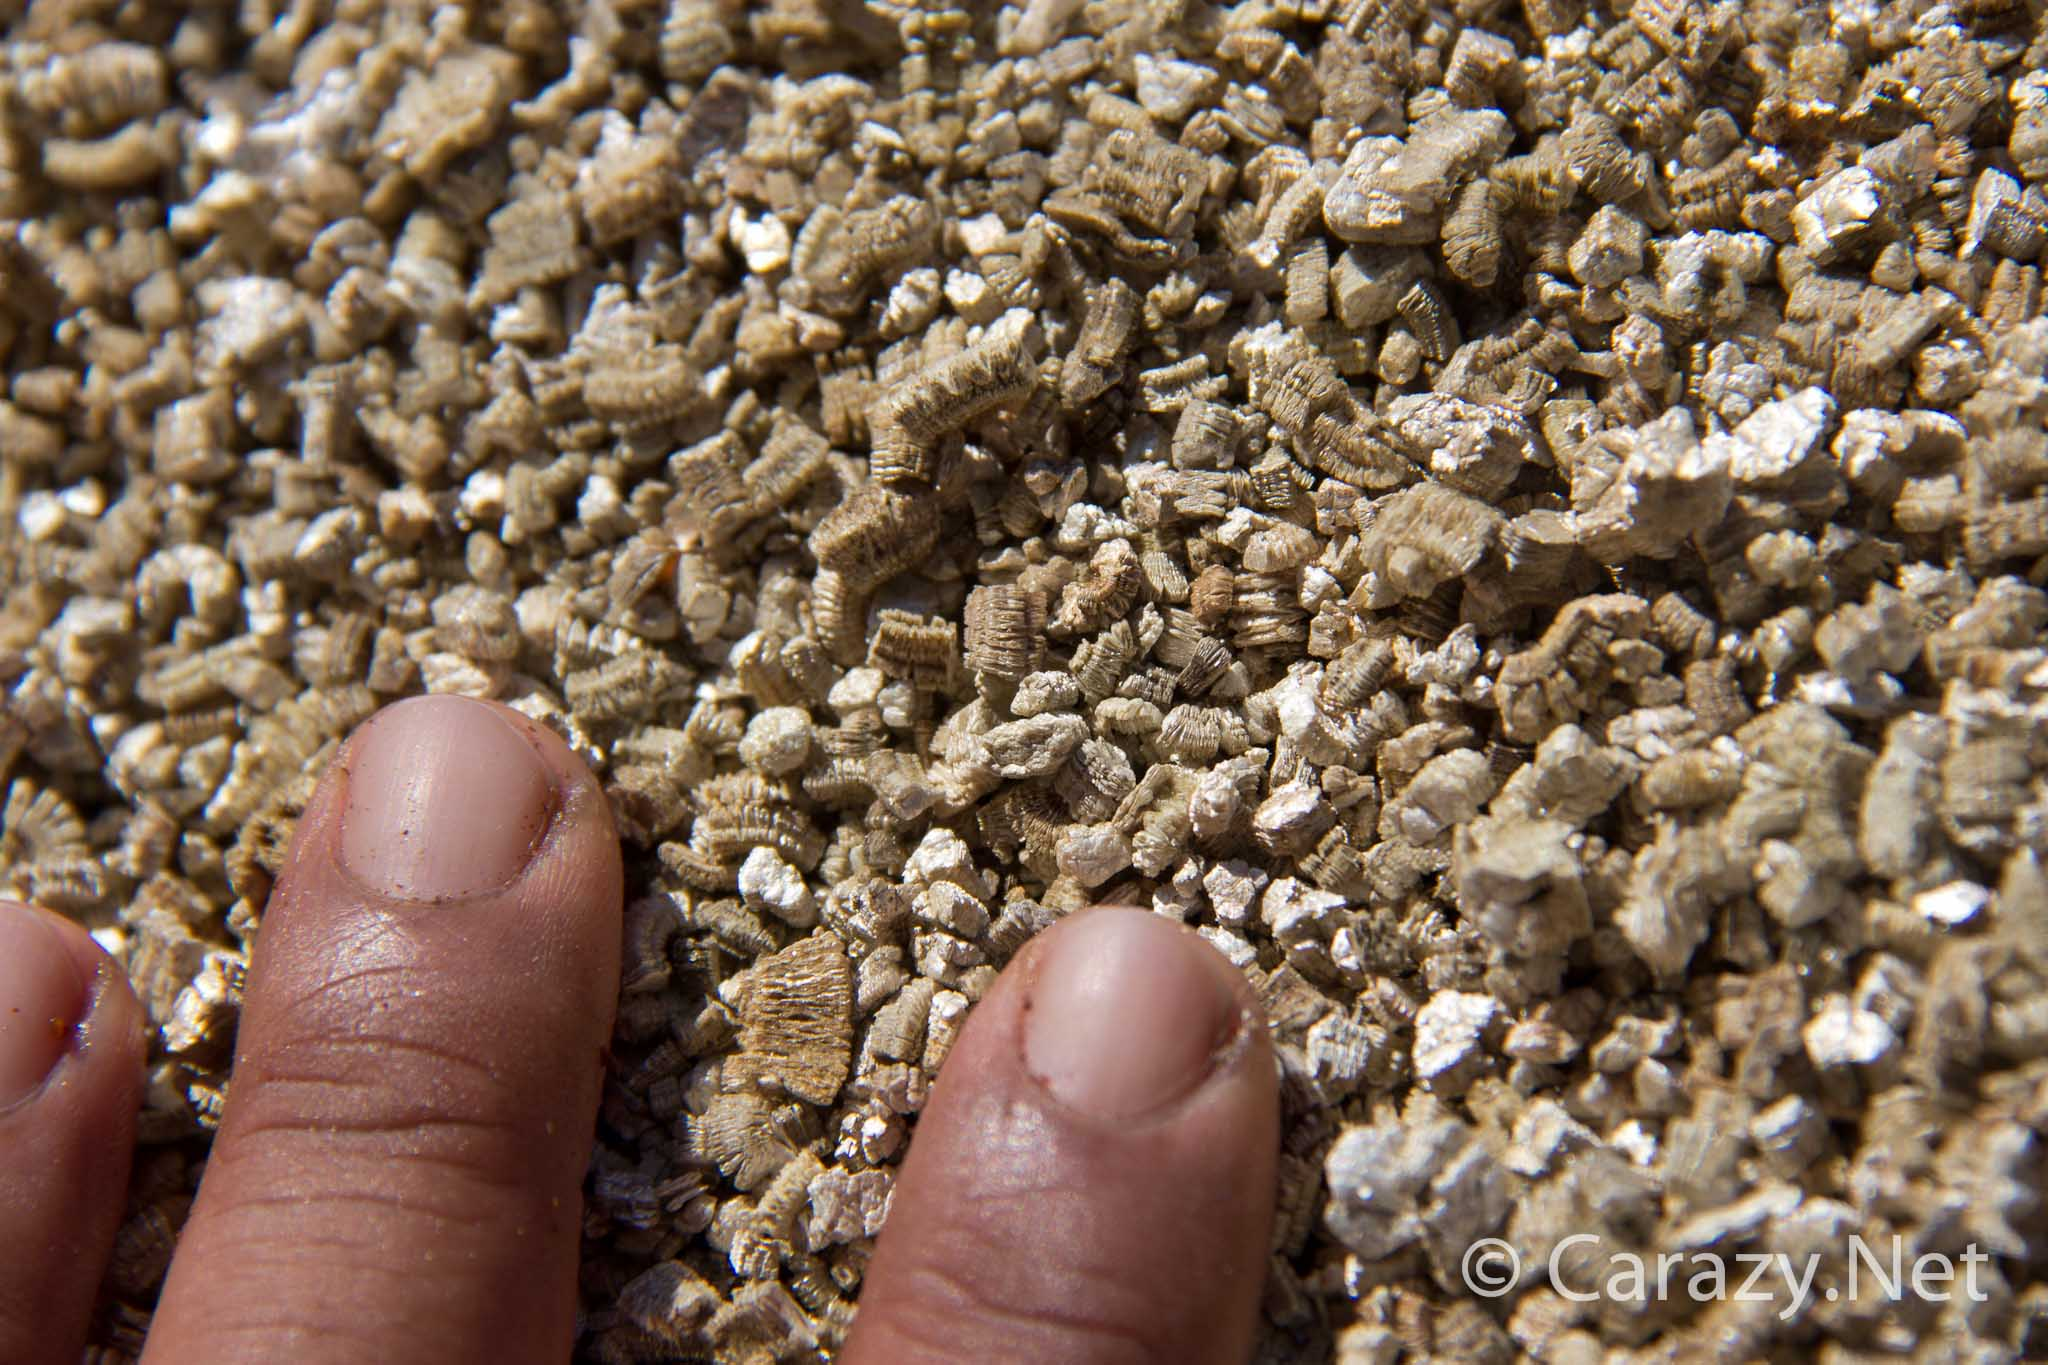 Gracious Wicking Wicking Bed Media Comparison It Feels Like Fibrous Sand A Closeup Conclusion Carazy Suburban Barely Sticksto Your Skin Like Wet Dirt Because houzz-03 Vermiculite Vs Perlite